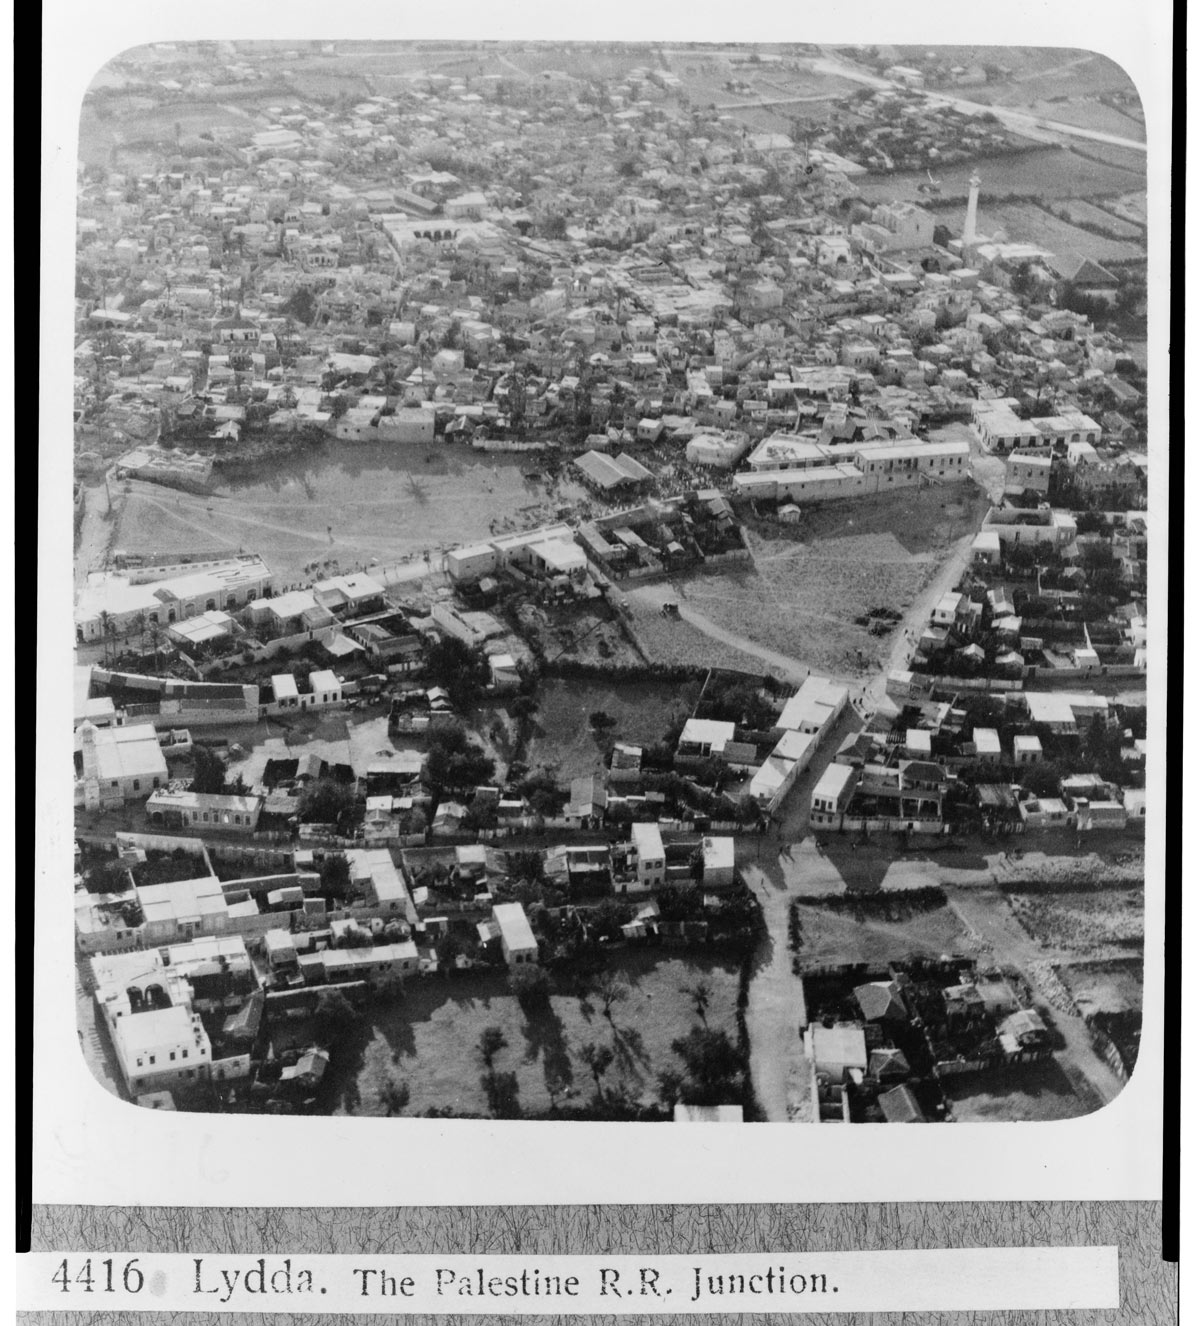 <em>An aerial view of Lydda in the 1930s.</em> From the G. Eric and Edith Matson Photograph Collection, Library of Congress.